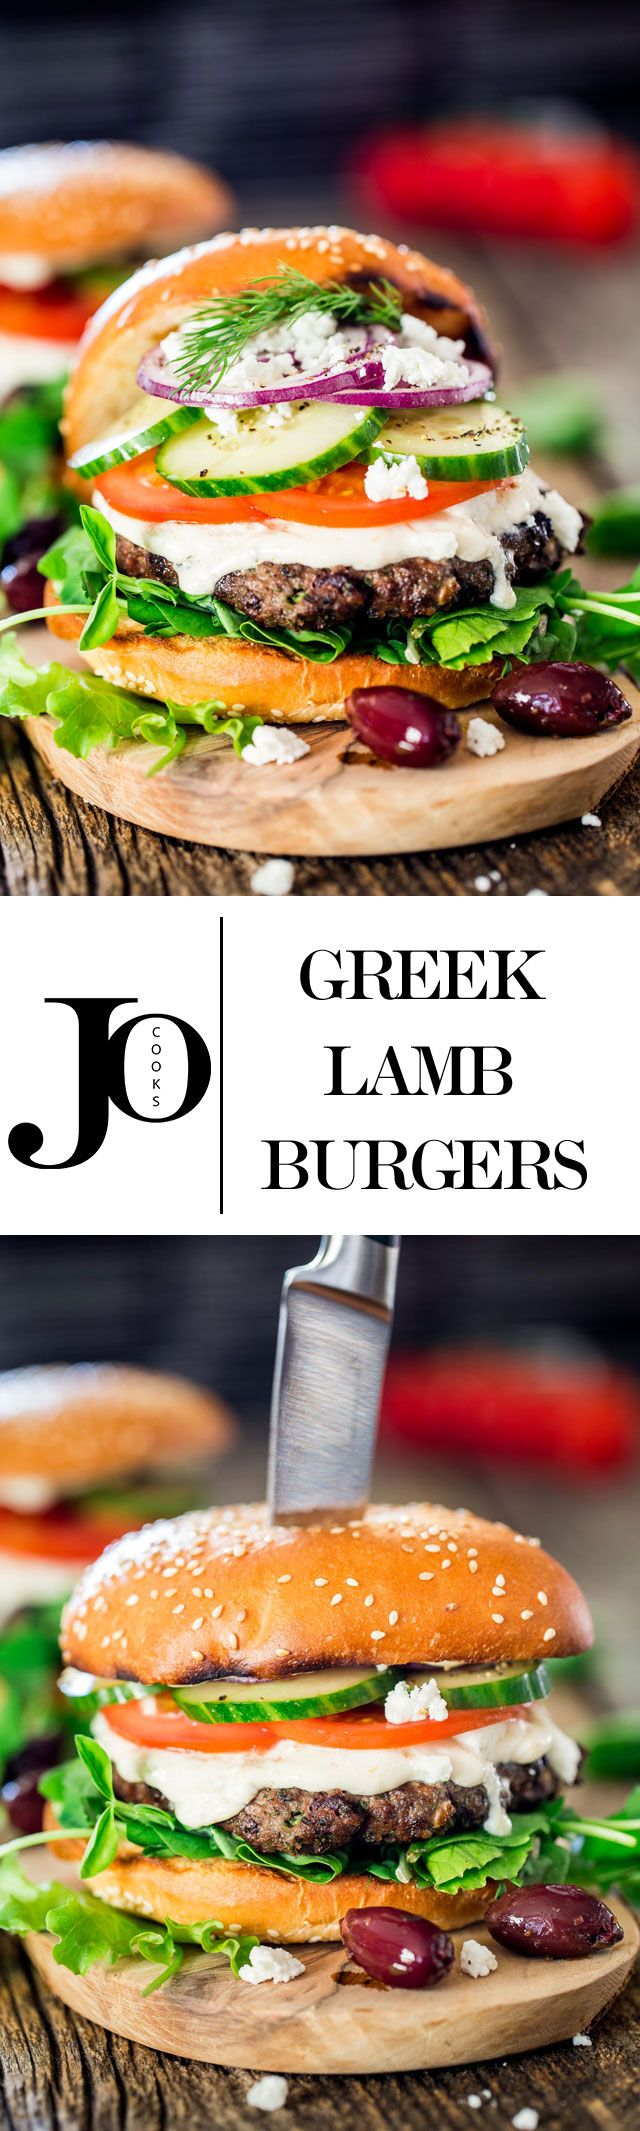 These Greek lamb burgers are grilled to perfection. They're juicy and flavorful, served on a toasted bun with tzatziki sauce, tomatoes, cucumbers and feta cheese.